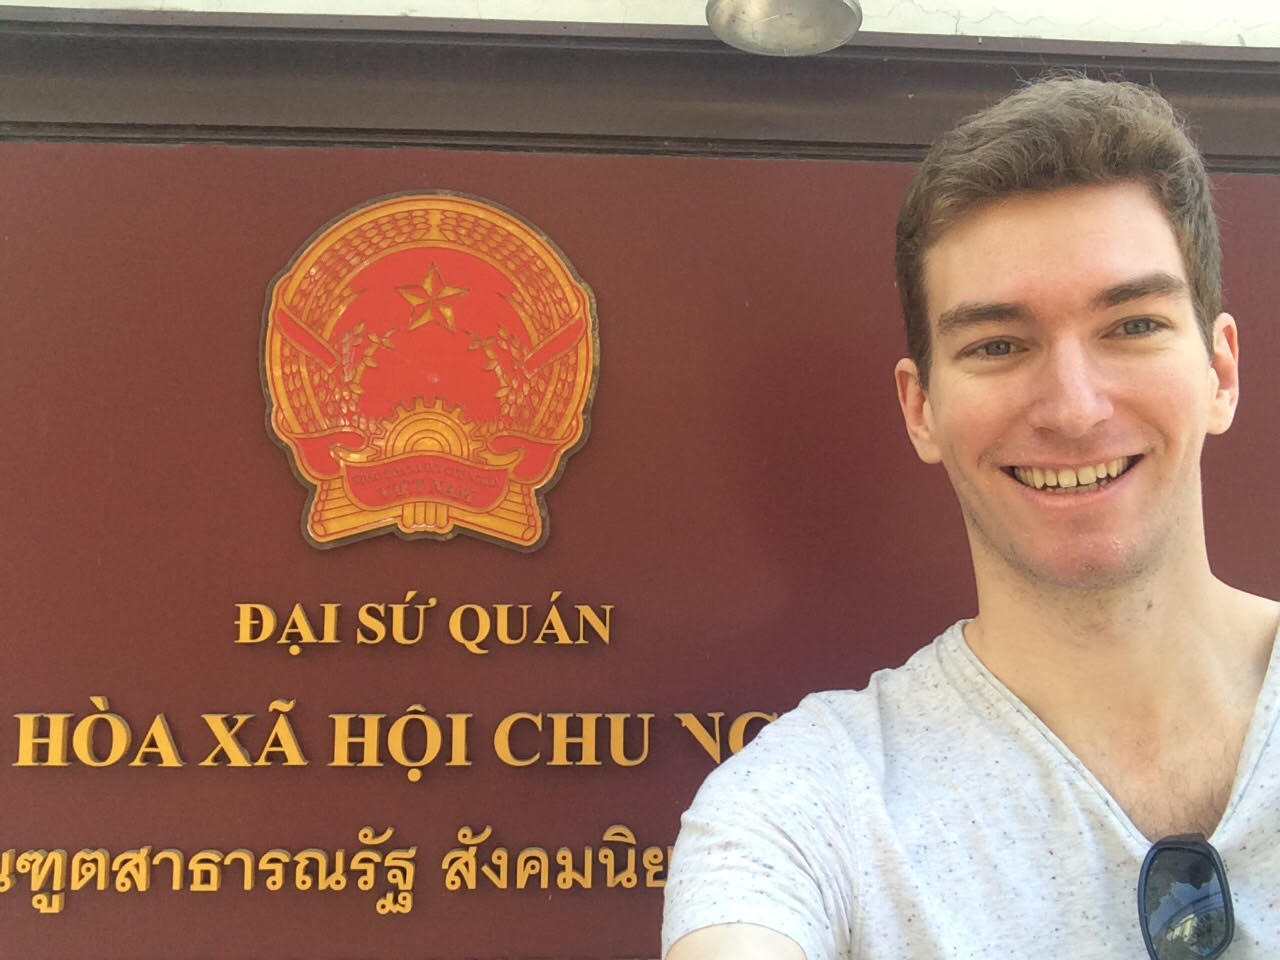 Elliott Killian ElliottKillian in front of the Vietnamese Embassy in Bangkok Thailand. The sign is in Vietnamese and in Thai. Trying new places, Asia